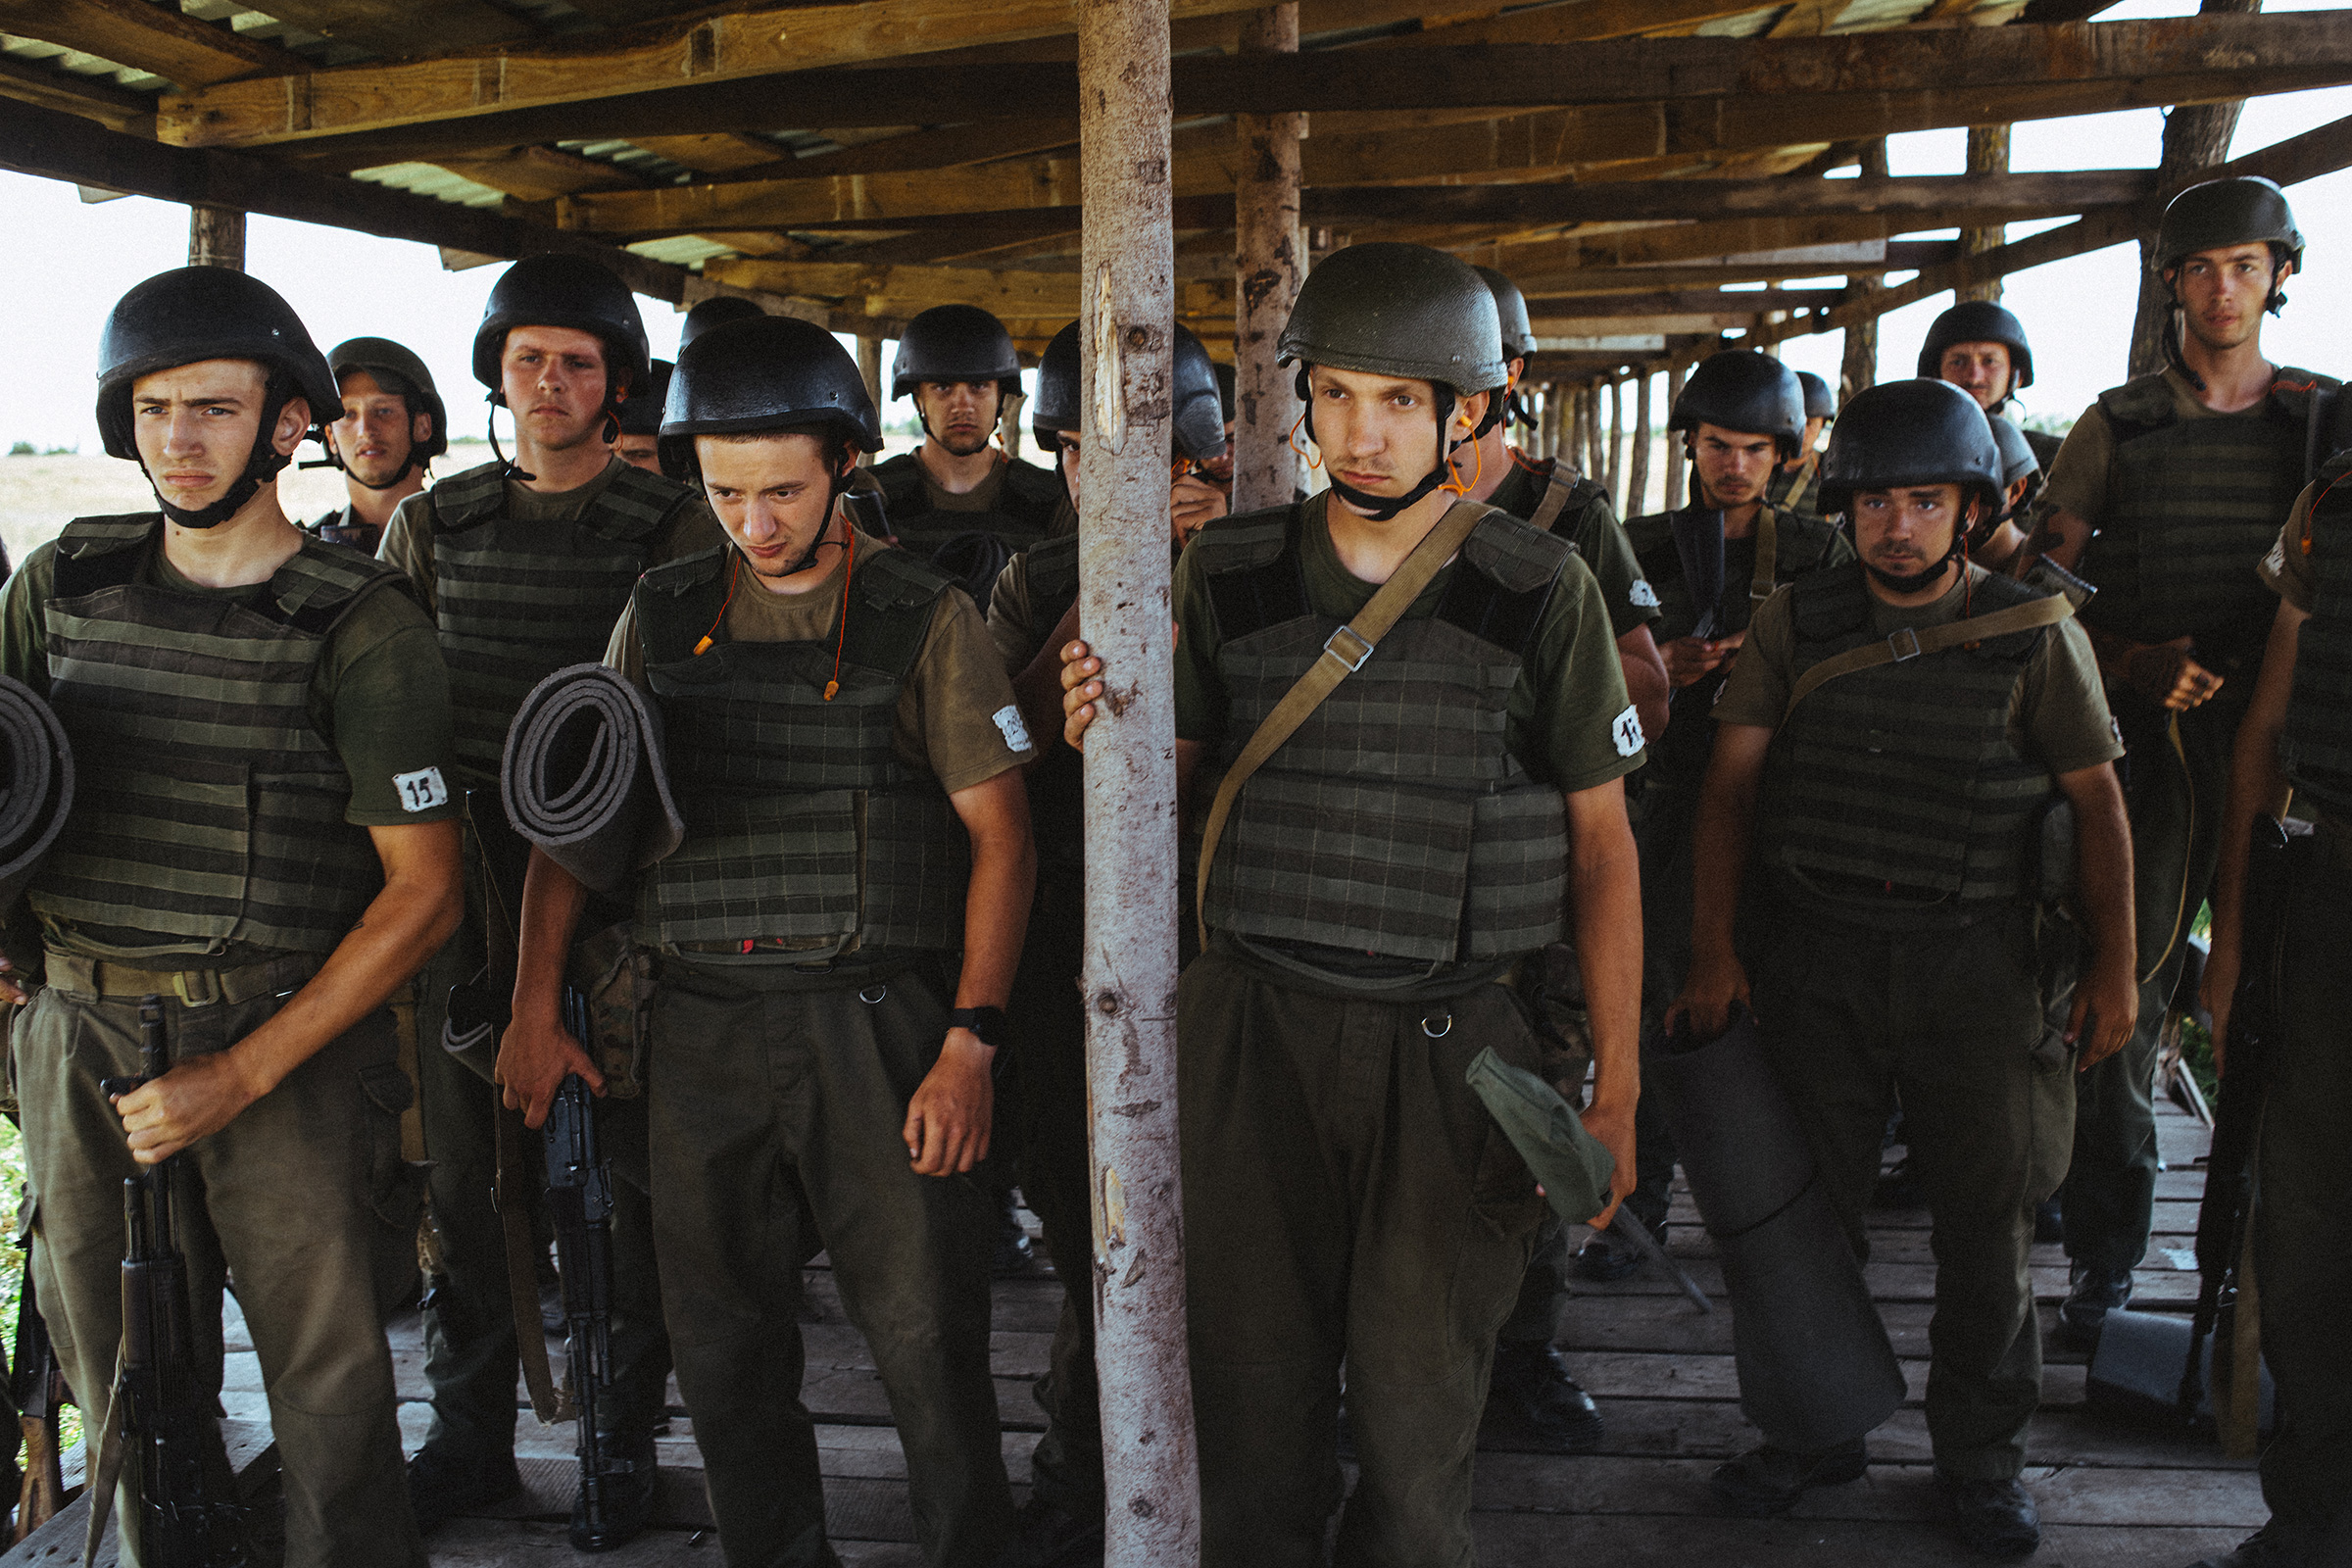 New recruits take part in basic training at one of Azov's bases near the frontline city of Mariupol in eastern Ukraine in August 2019.